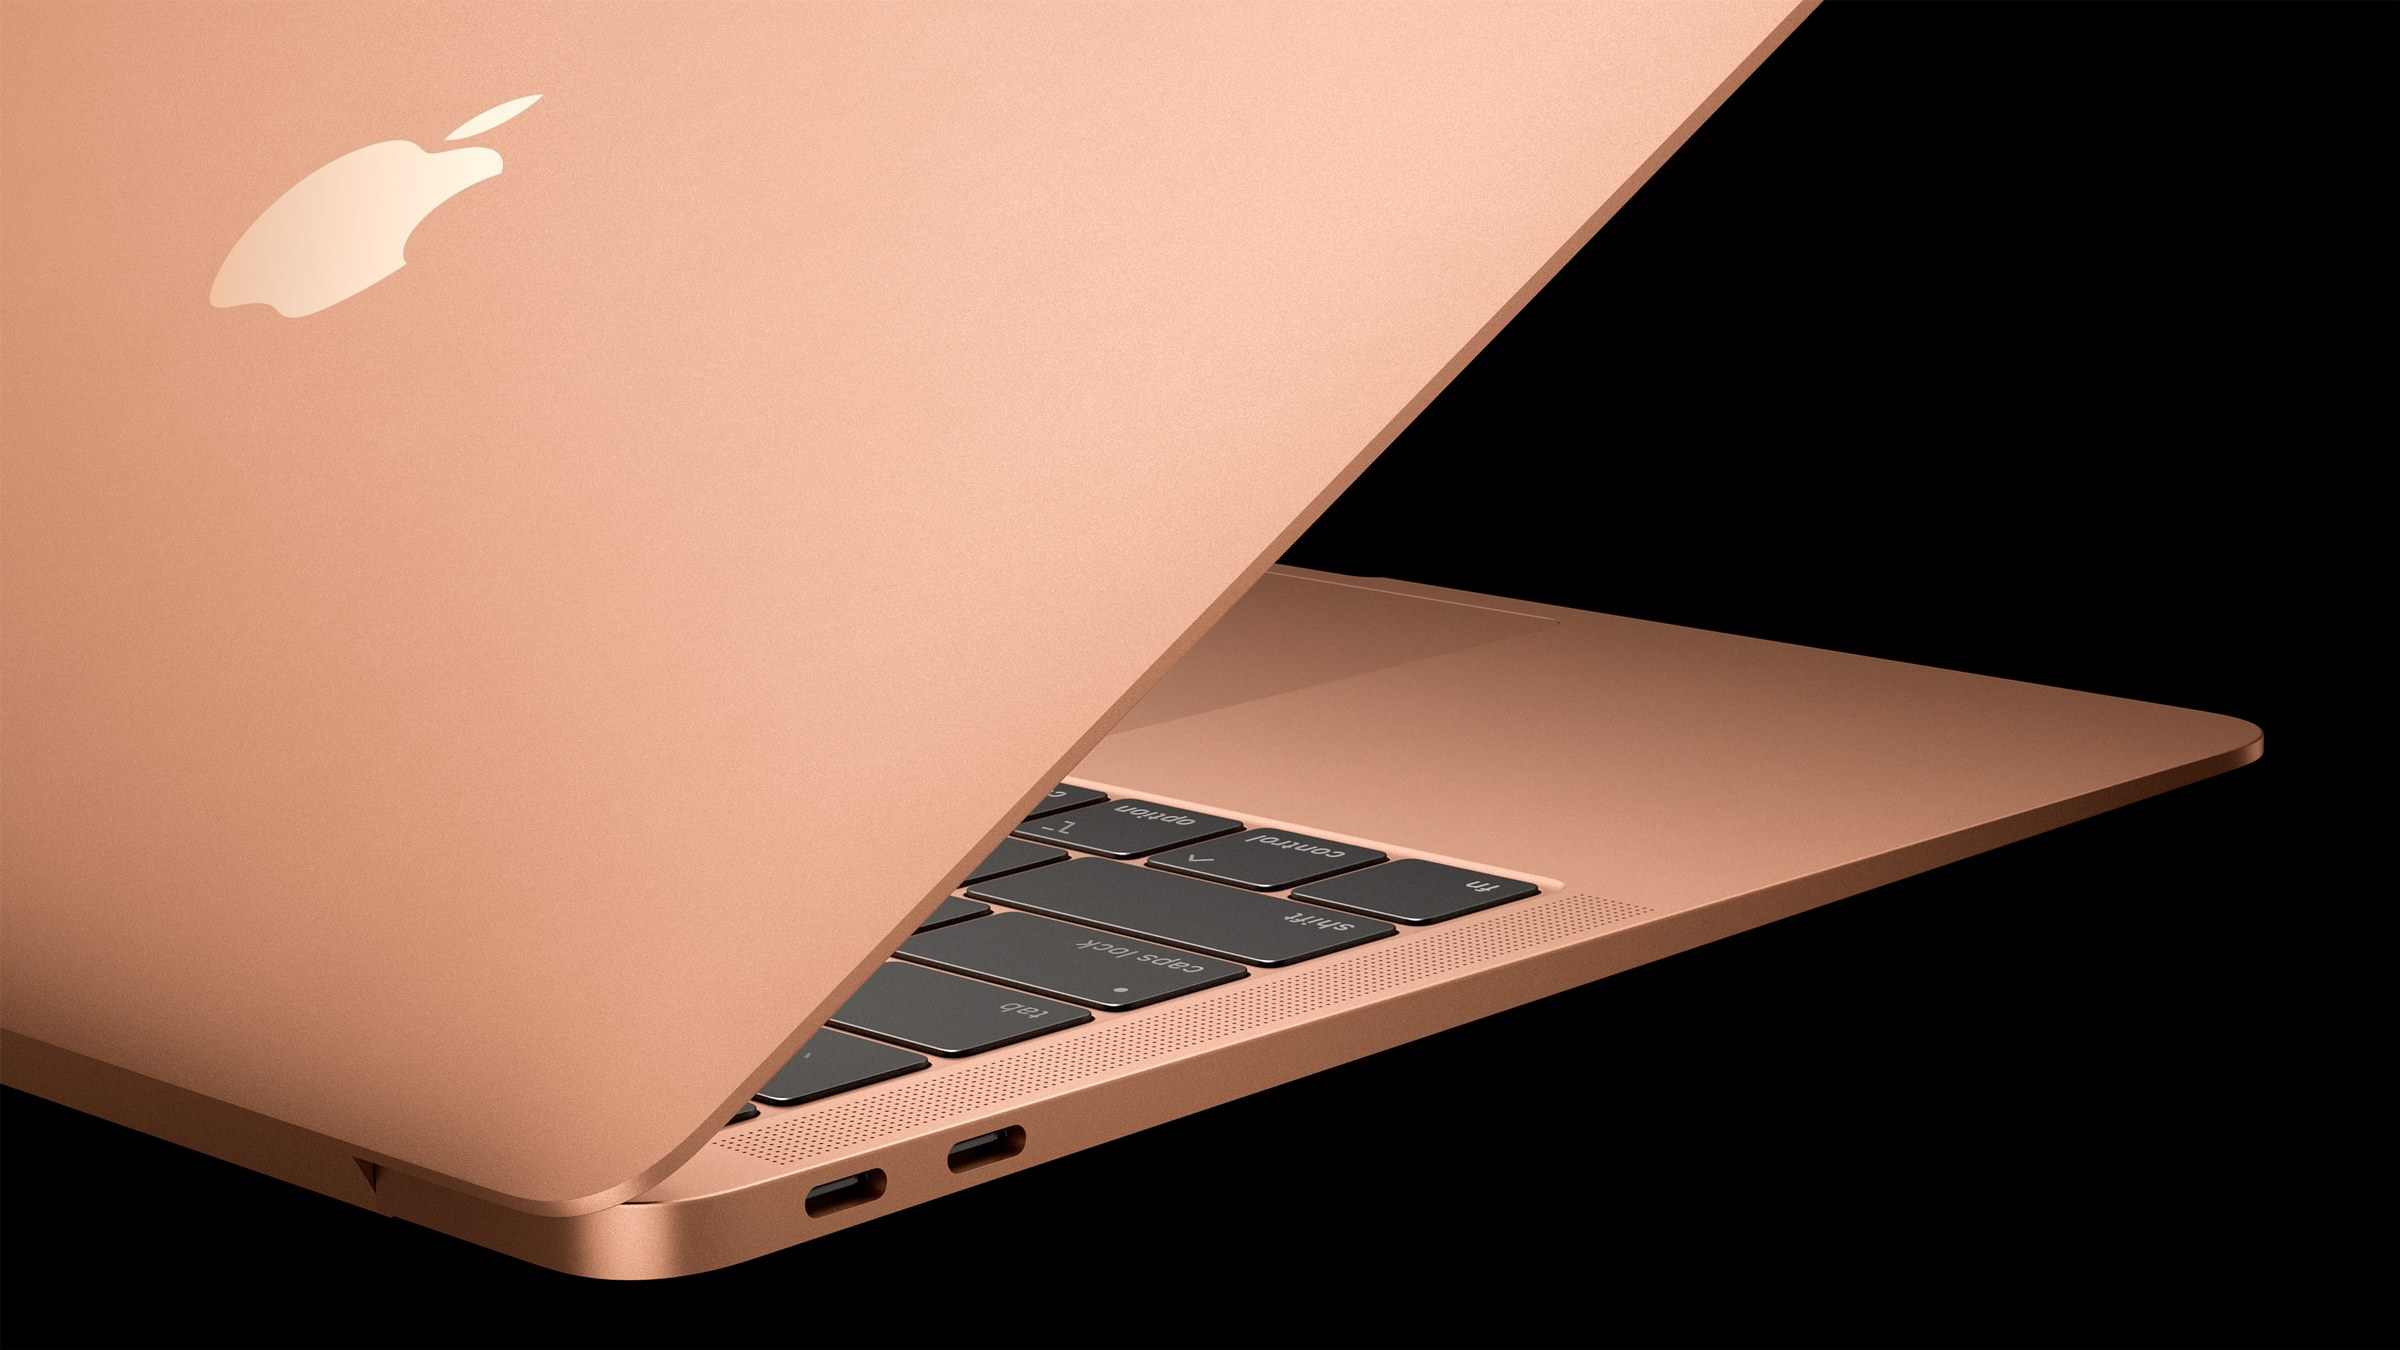 What Makes Mac Laptops so Reliable?